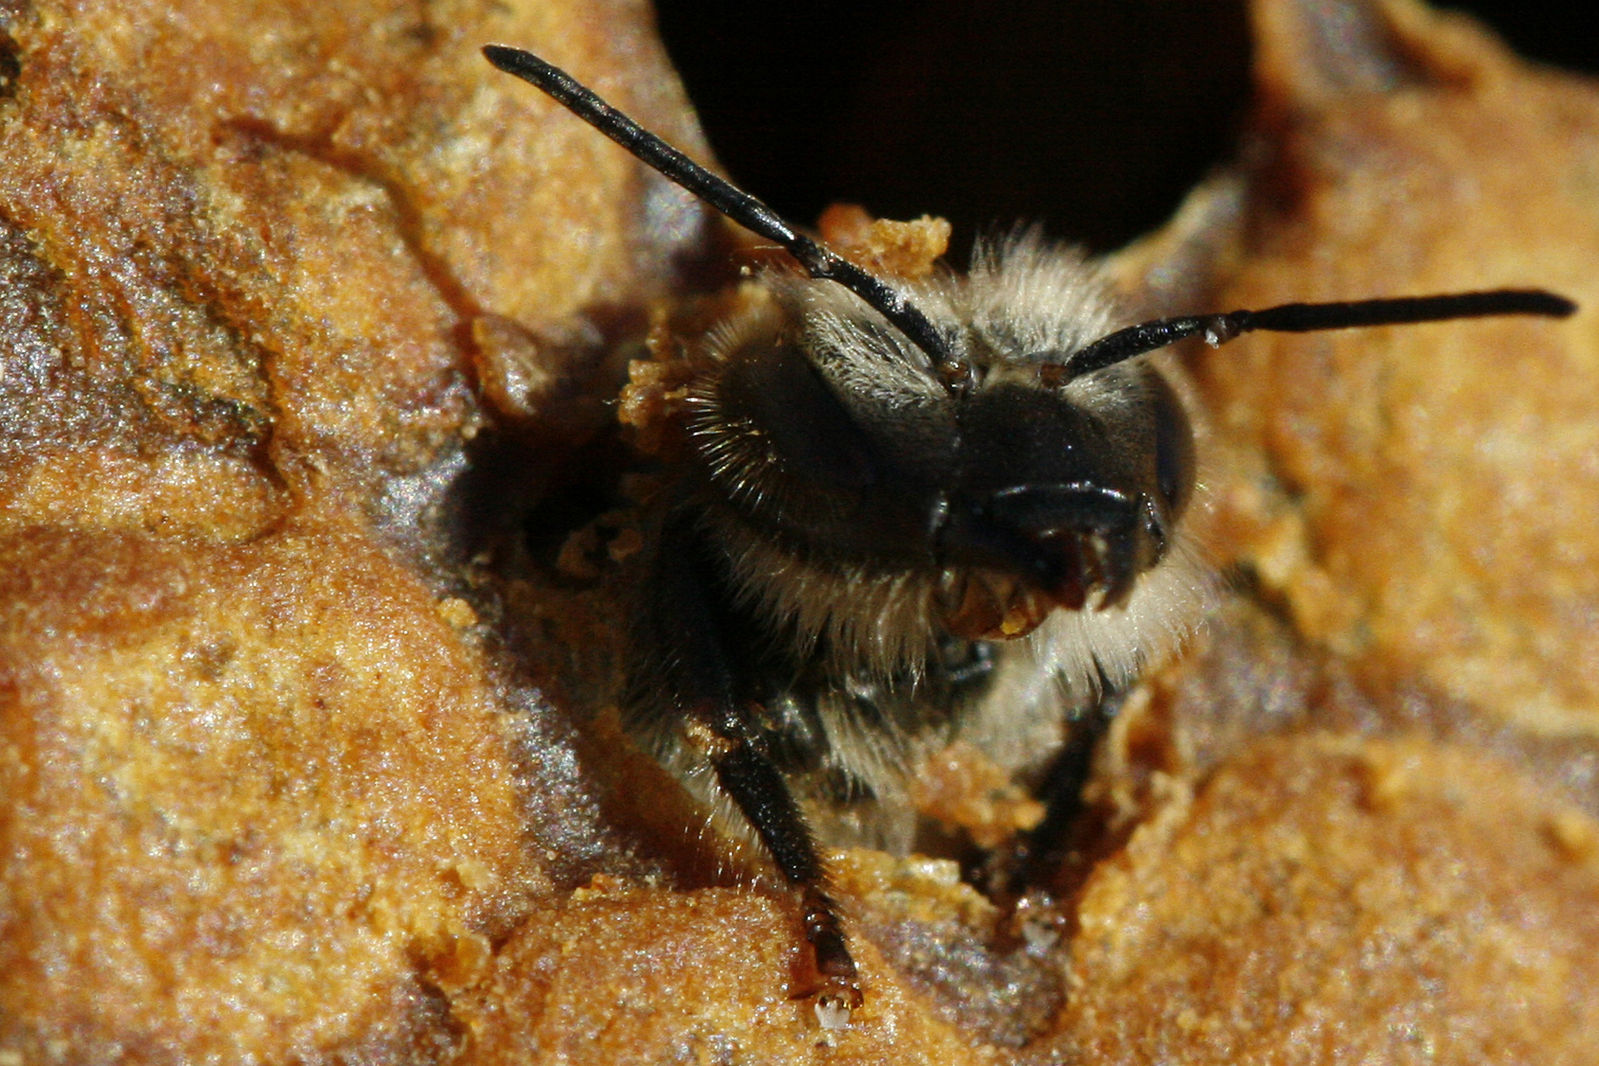 A Young bee emerging from its cell in the hive.